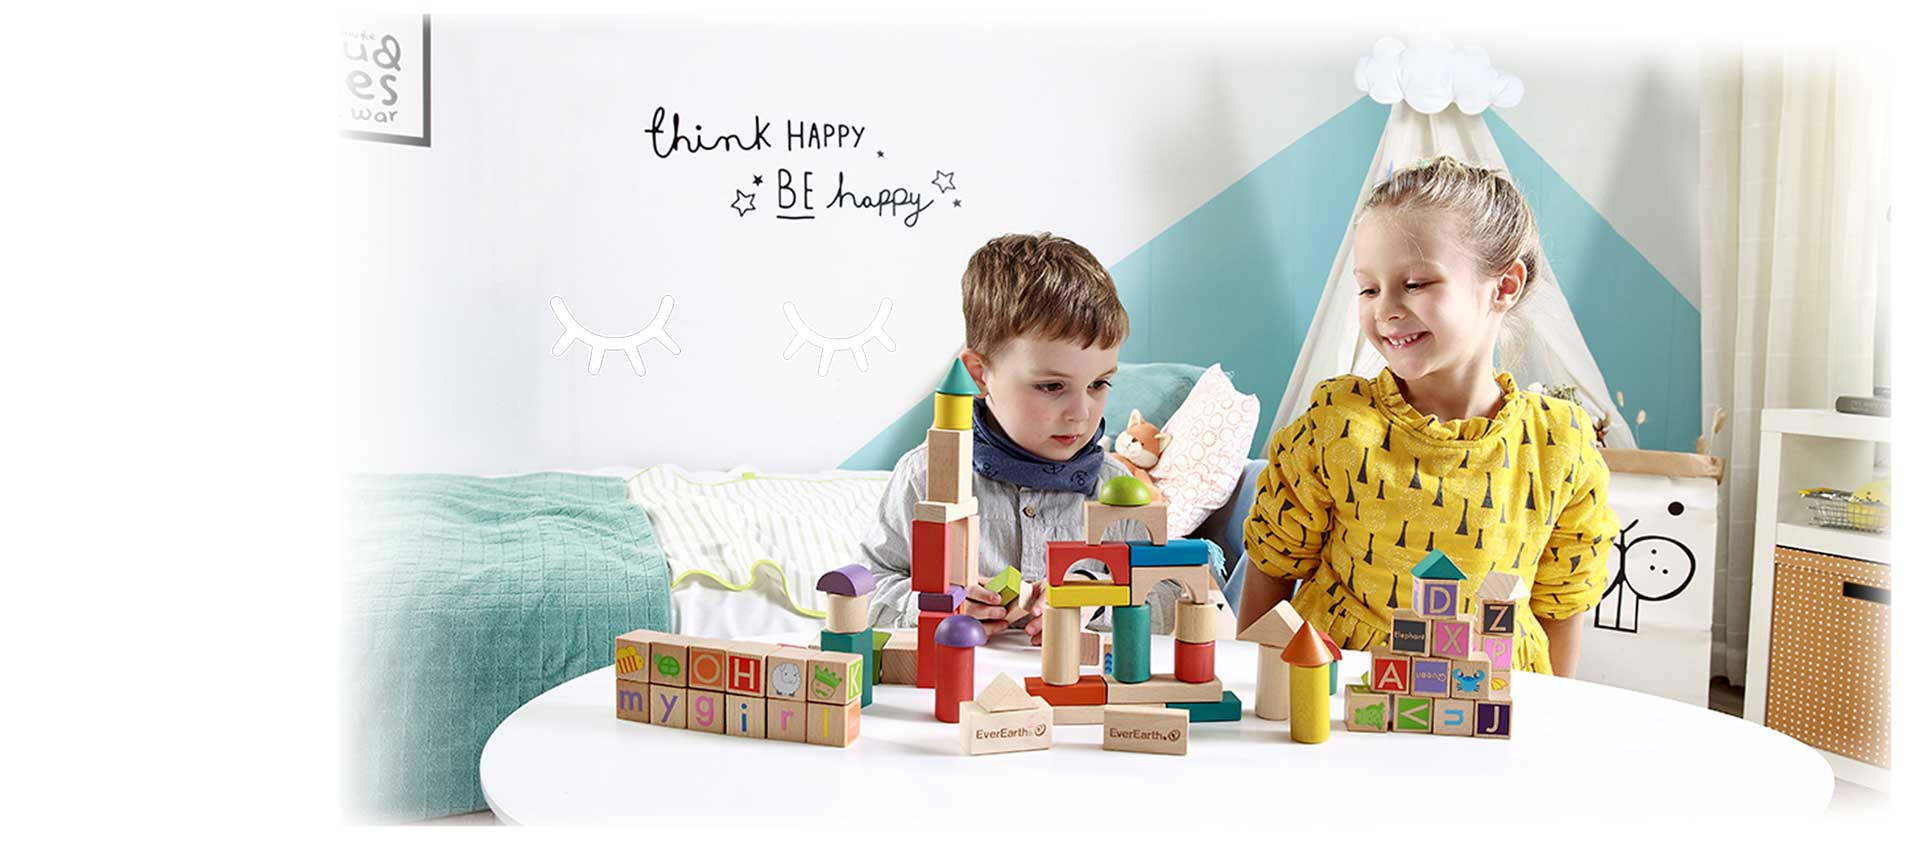 Greengrub educational wooden toys Australia and puzzles